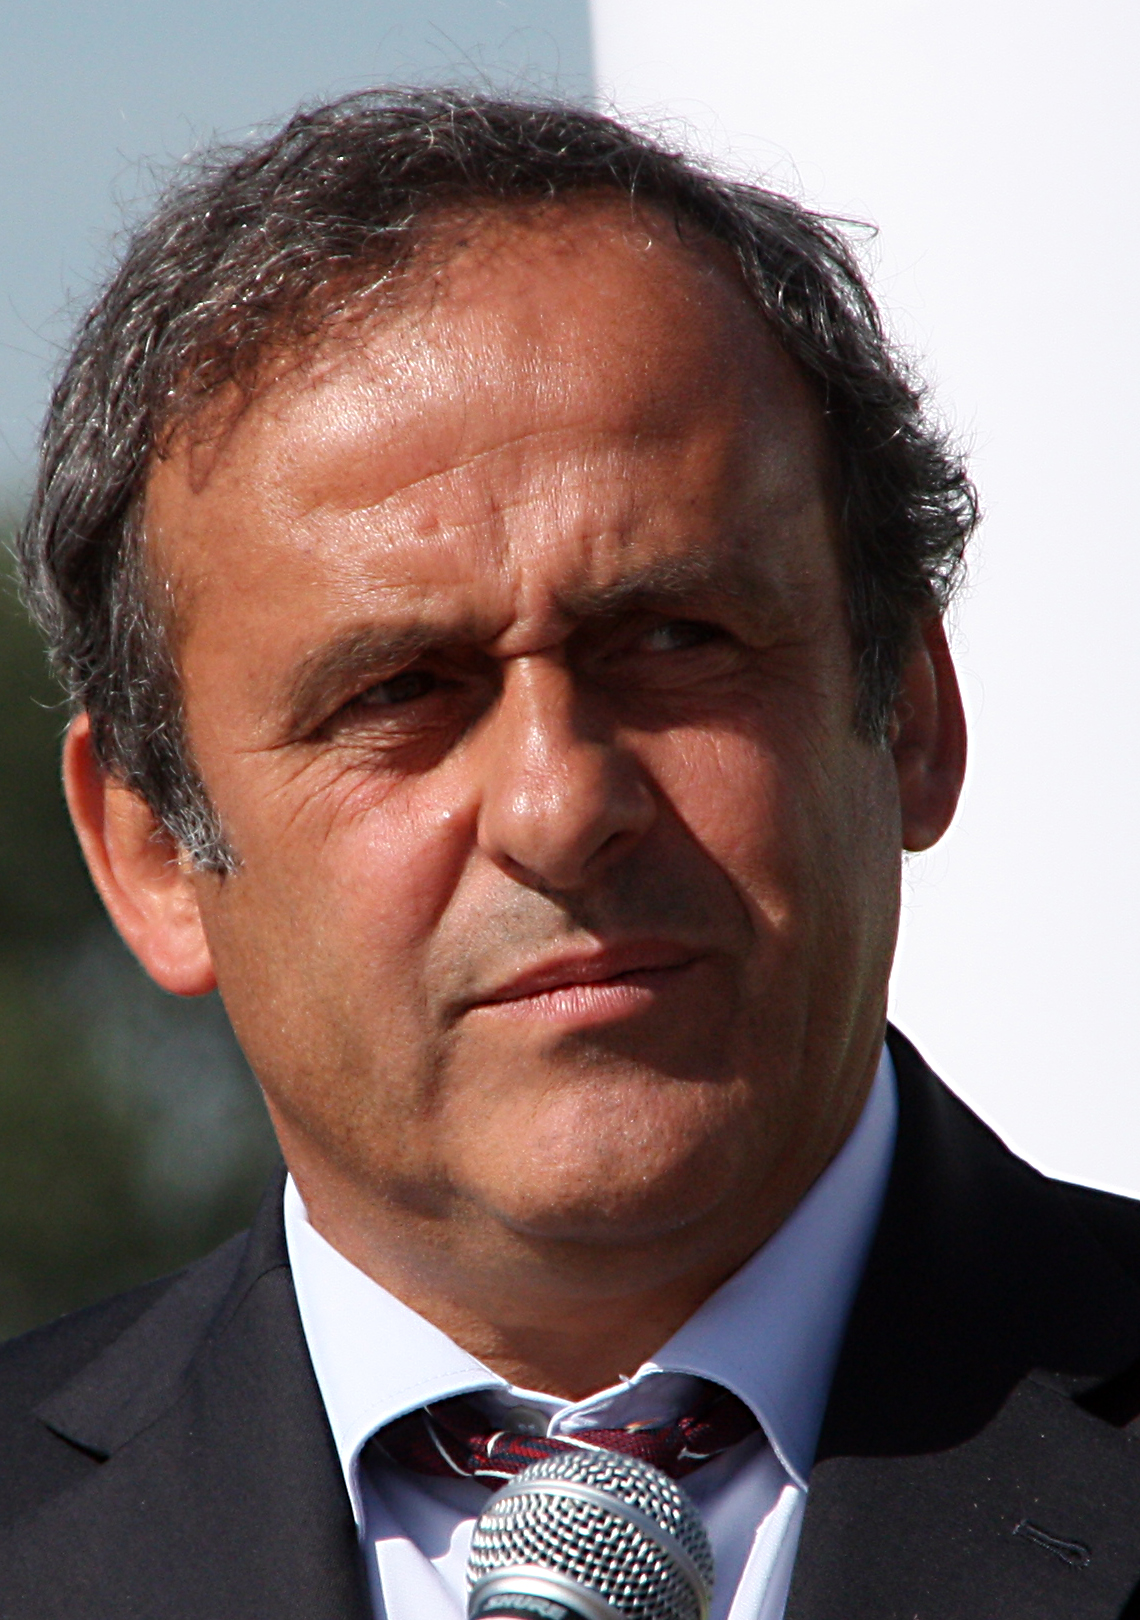 The 63-year old son of father Ald and mother Anna Michel Platini in 2018 photo. Michel Platini earned a  million dollar salary - leaving the net worth at 145 million in 2018